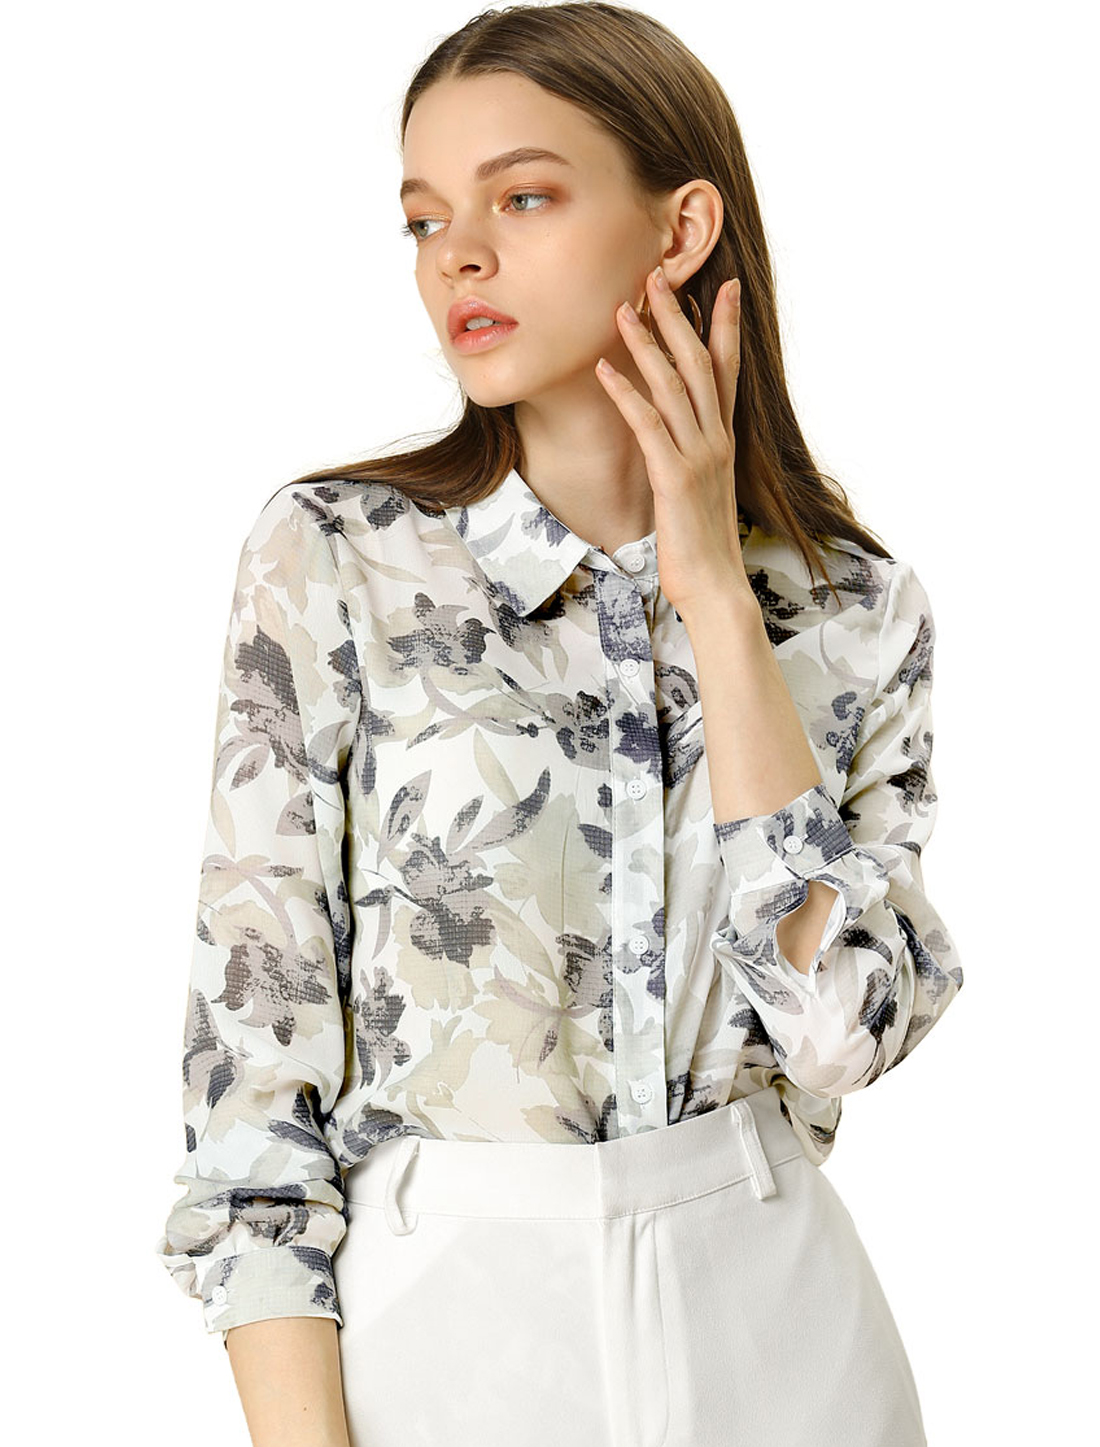 Allegra K Women's Floral Print Button Up Shirt Long Sleeves Vintage Top Gray L